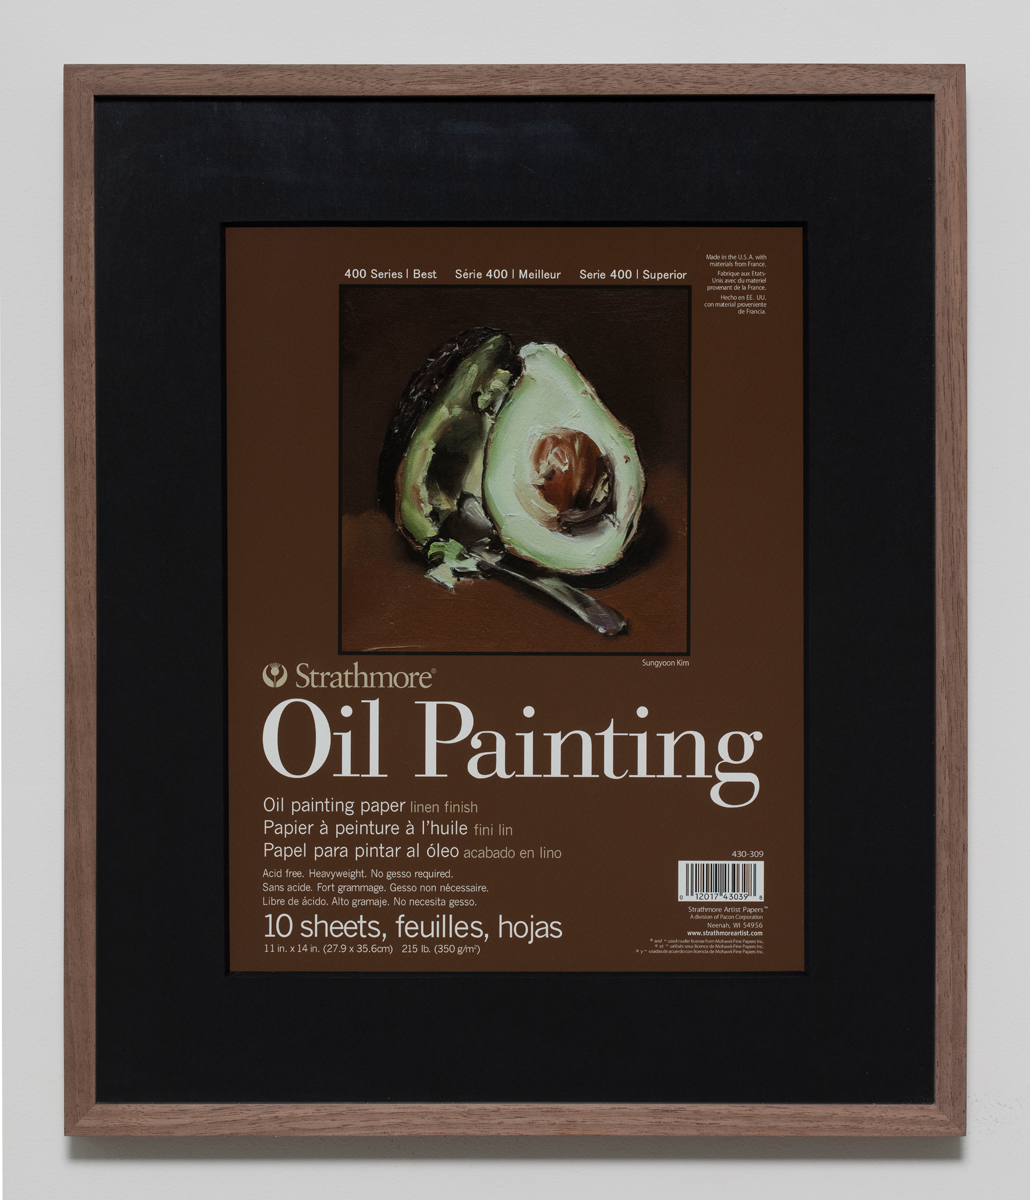 400 Series Oil Painting(7), 2018, Inkjet print on paper in walnut frame, 50.5 x 42.5 cm 이미지 제공: 갤러리현대 Courtesy of the artist and Gallery Hyundai.